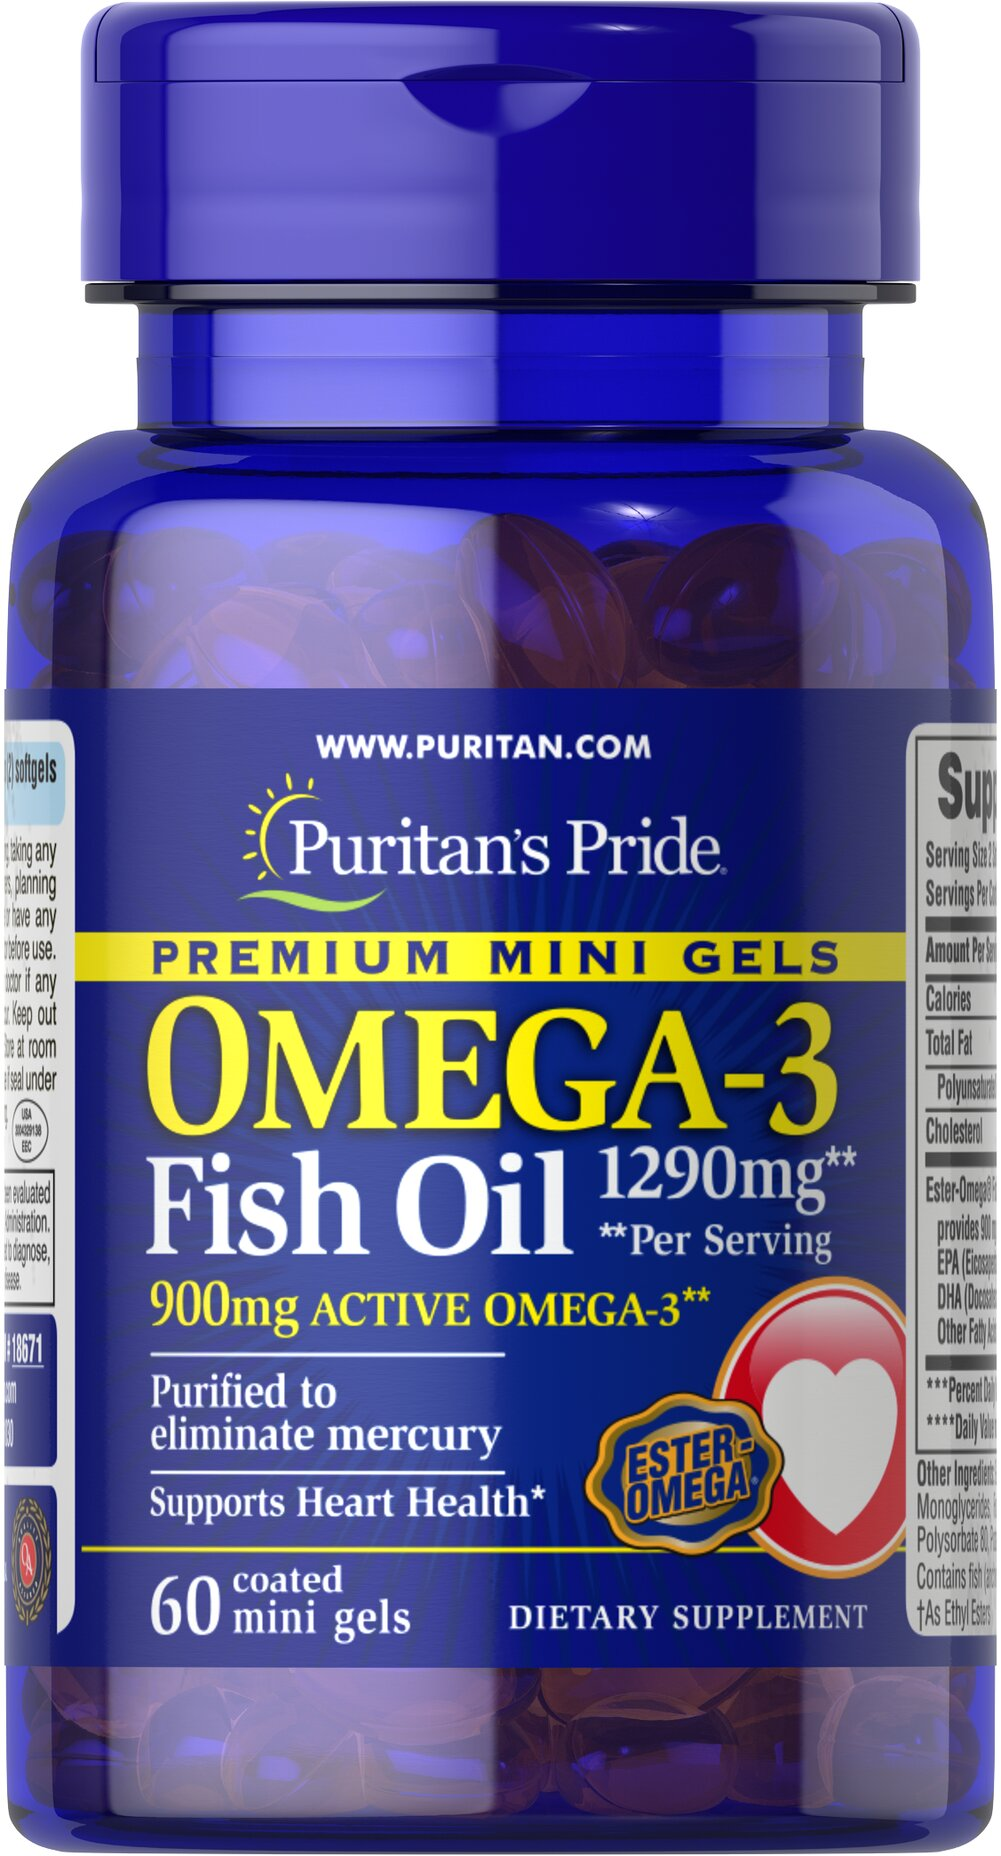 Omega-3 Fish Oil 645 mg Mini Gels (450 mg Active Omega-3)  60 Coated Softgels 645 mg $19.10